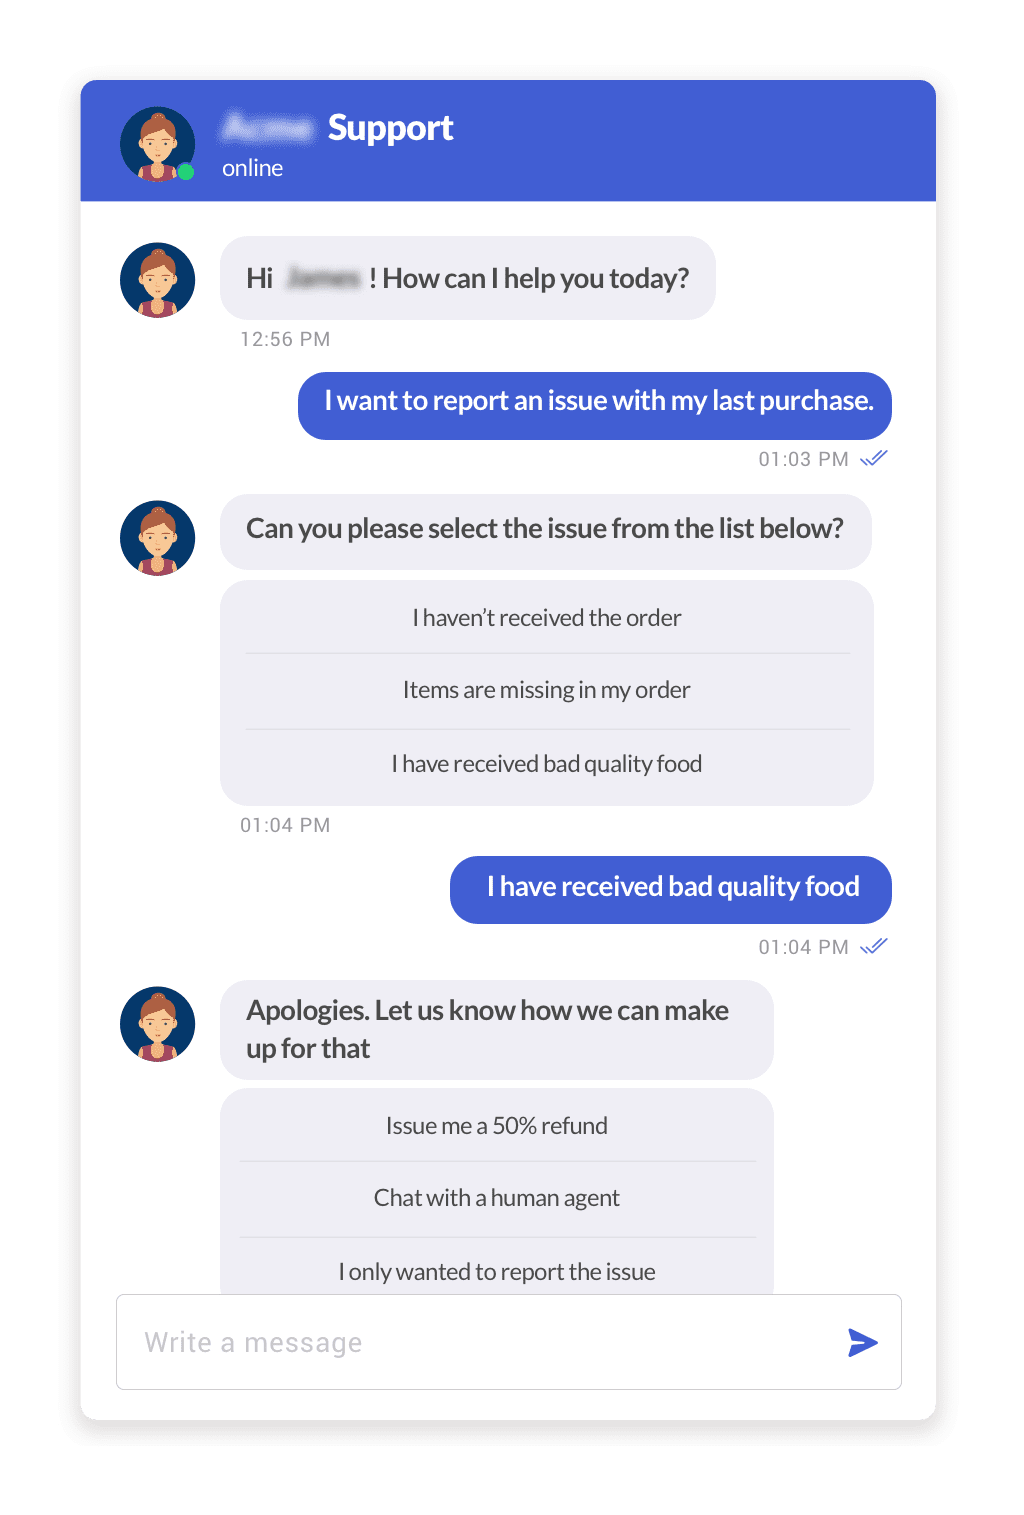 Chatbot Human handoff based on user preference